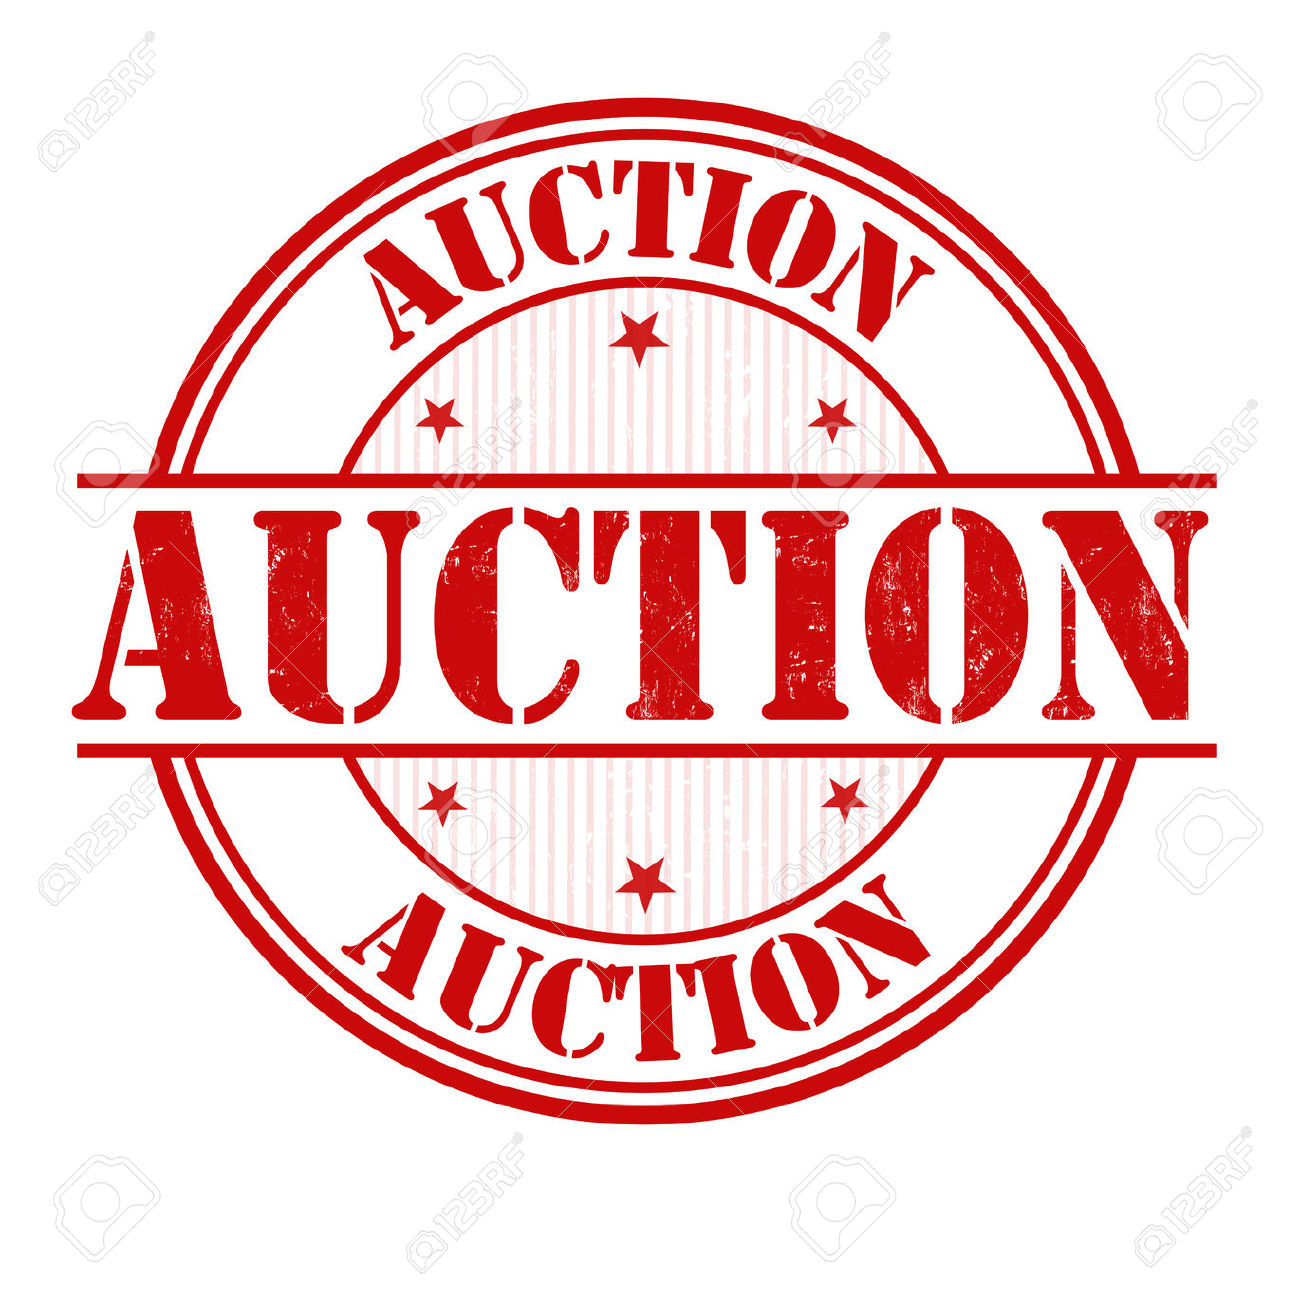 Auction pictures clip art.